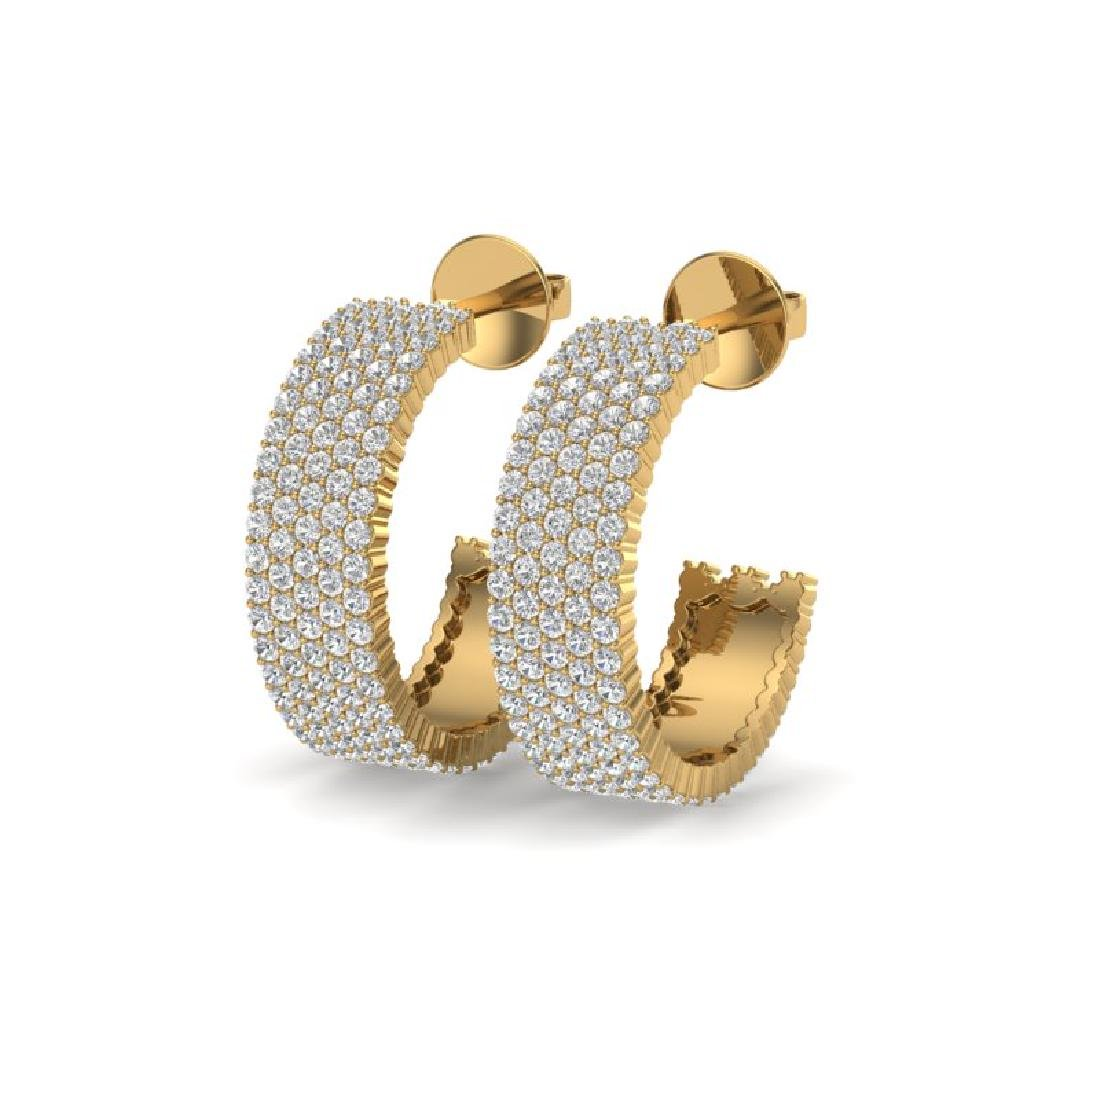 4.50 CTW Micro Pave VS/SI Diamond Earrings 14K Yellow